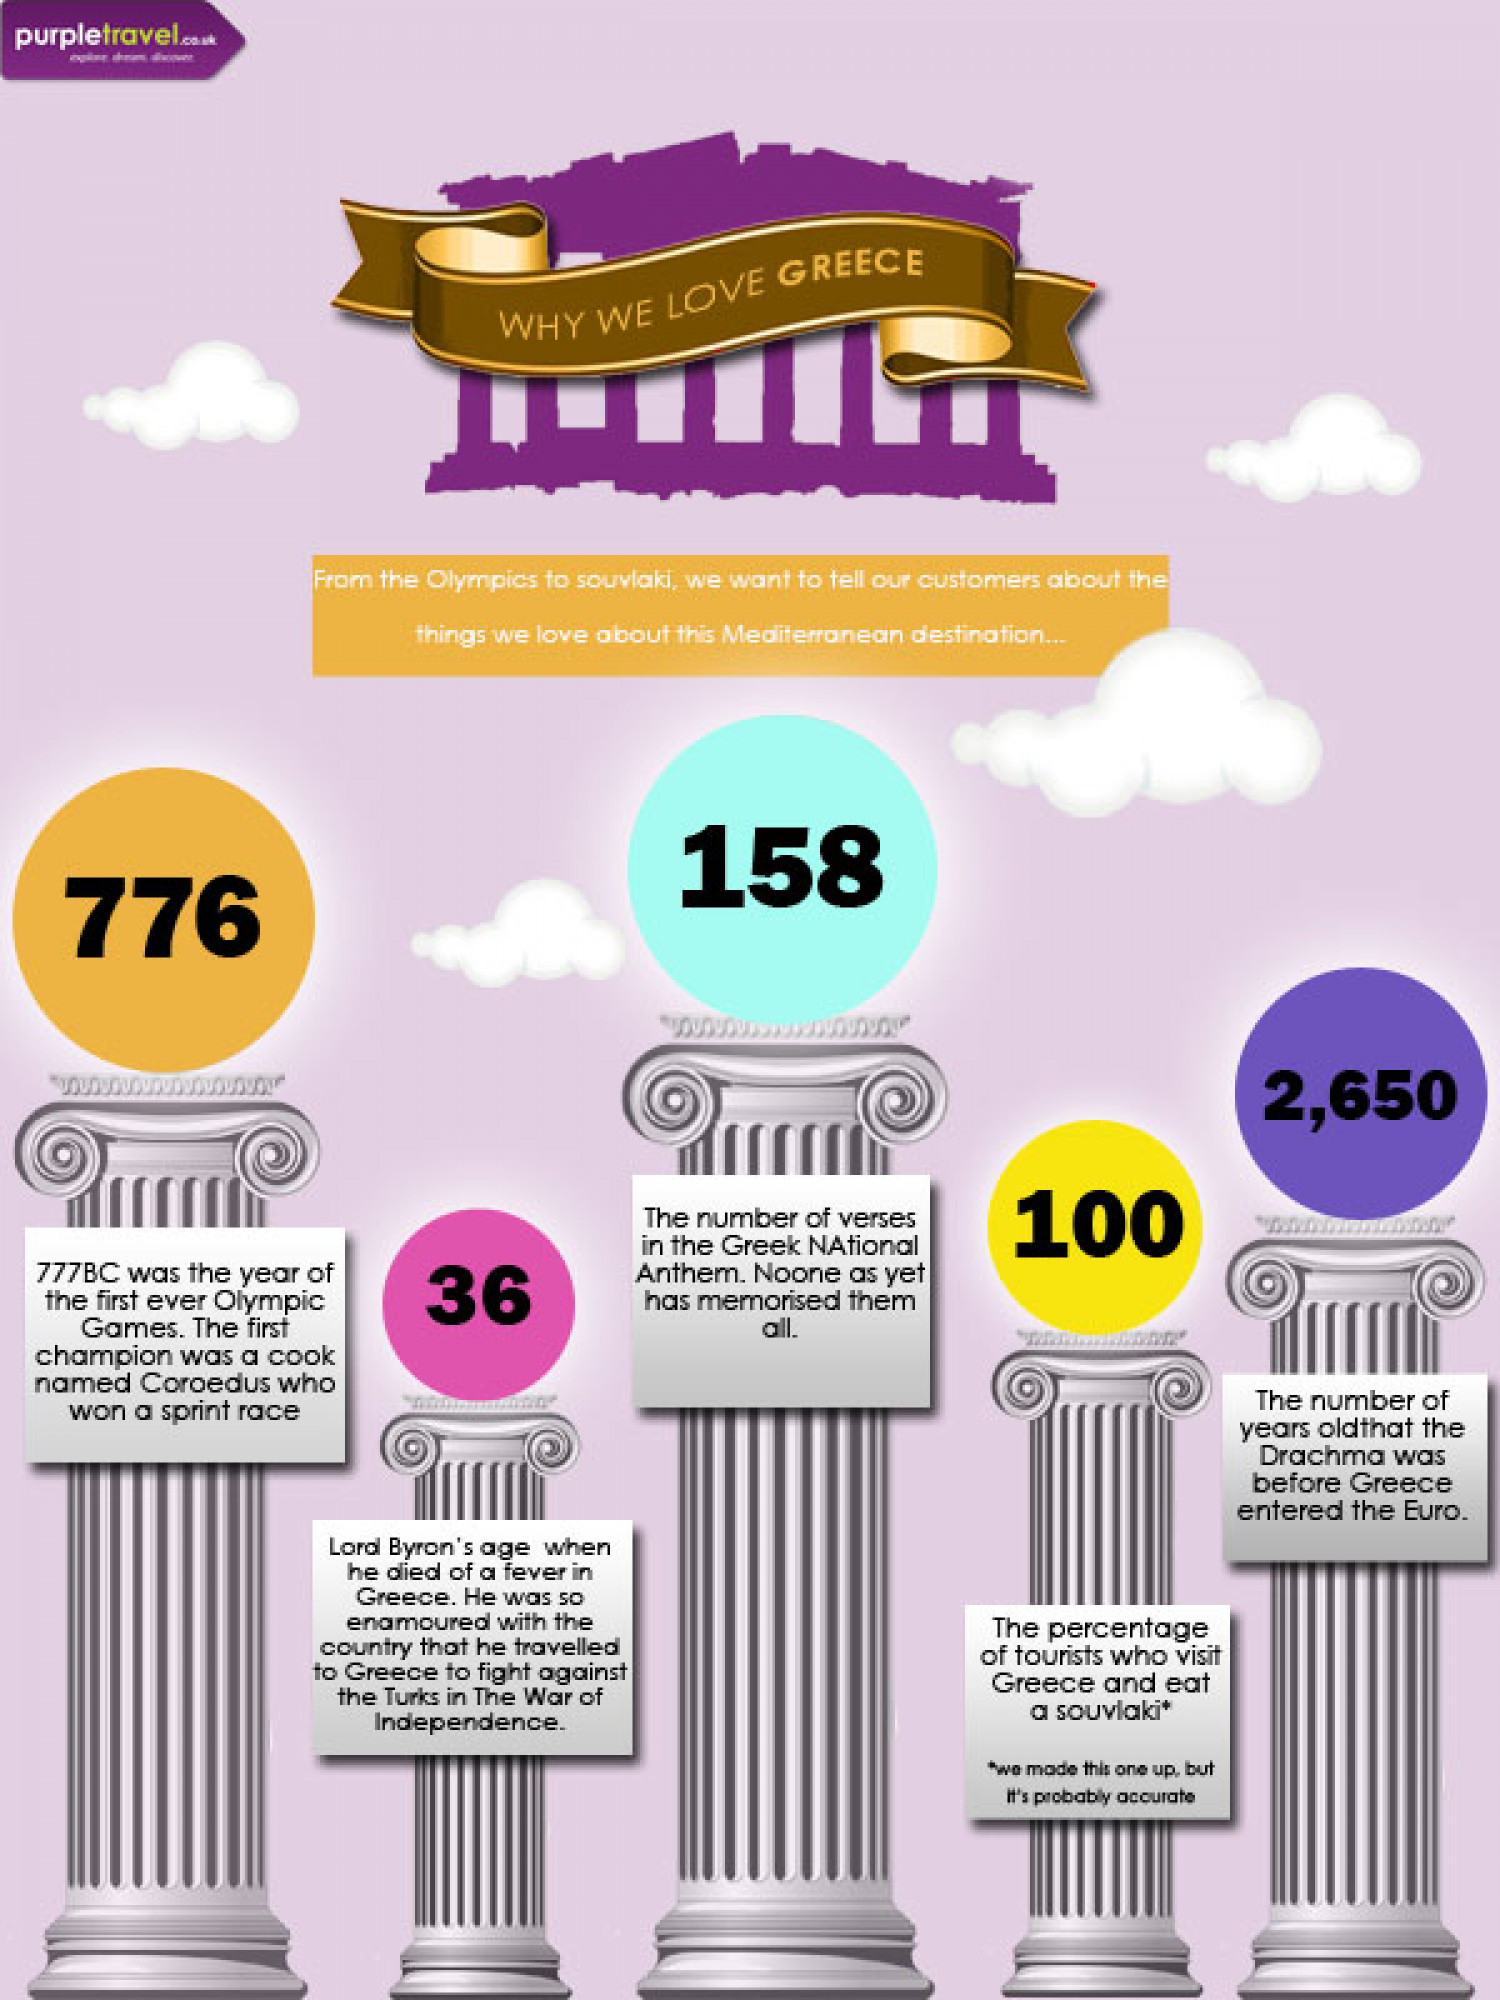 Why We Love Greece Infographic